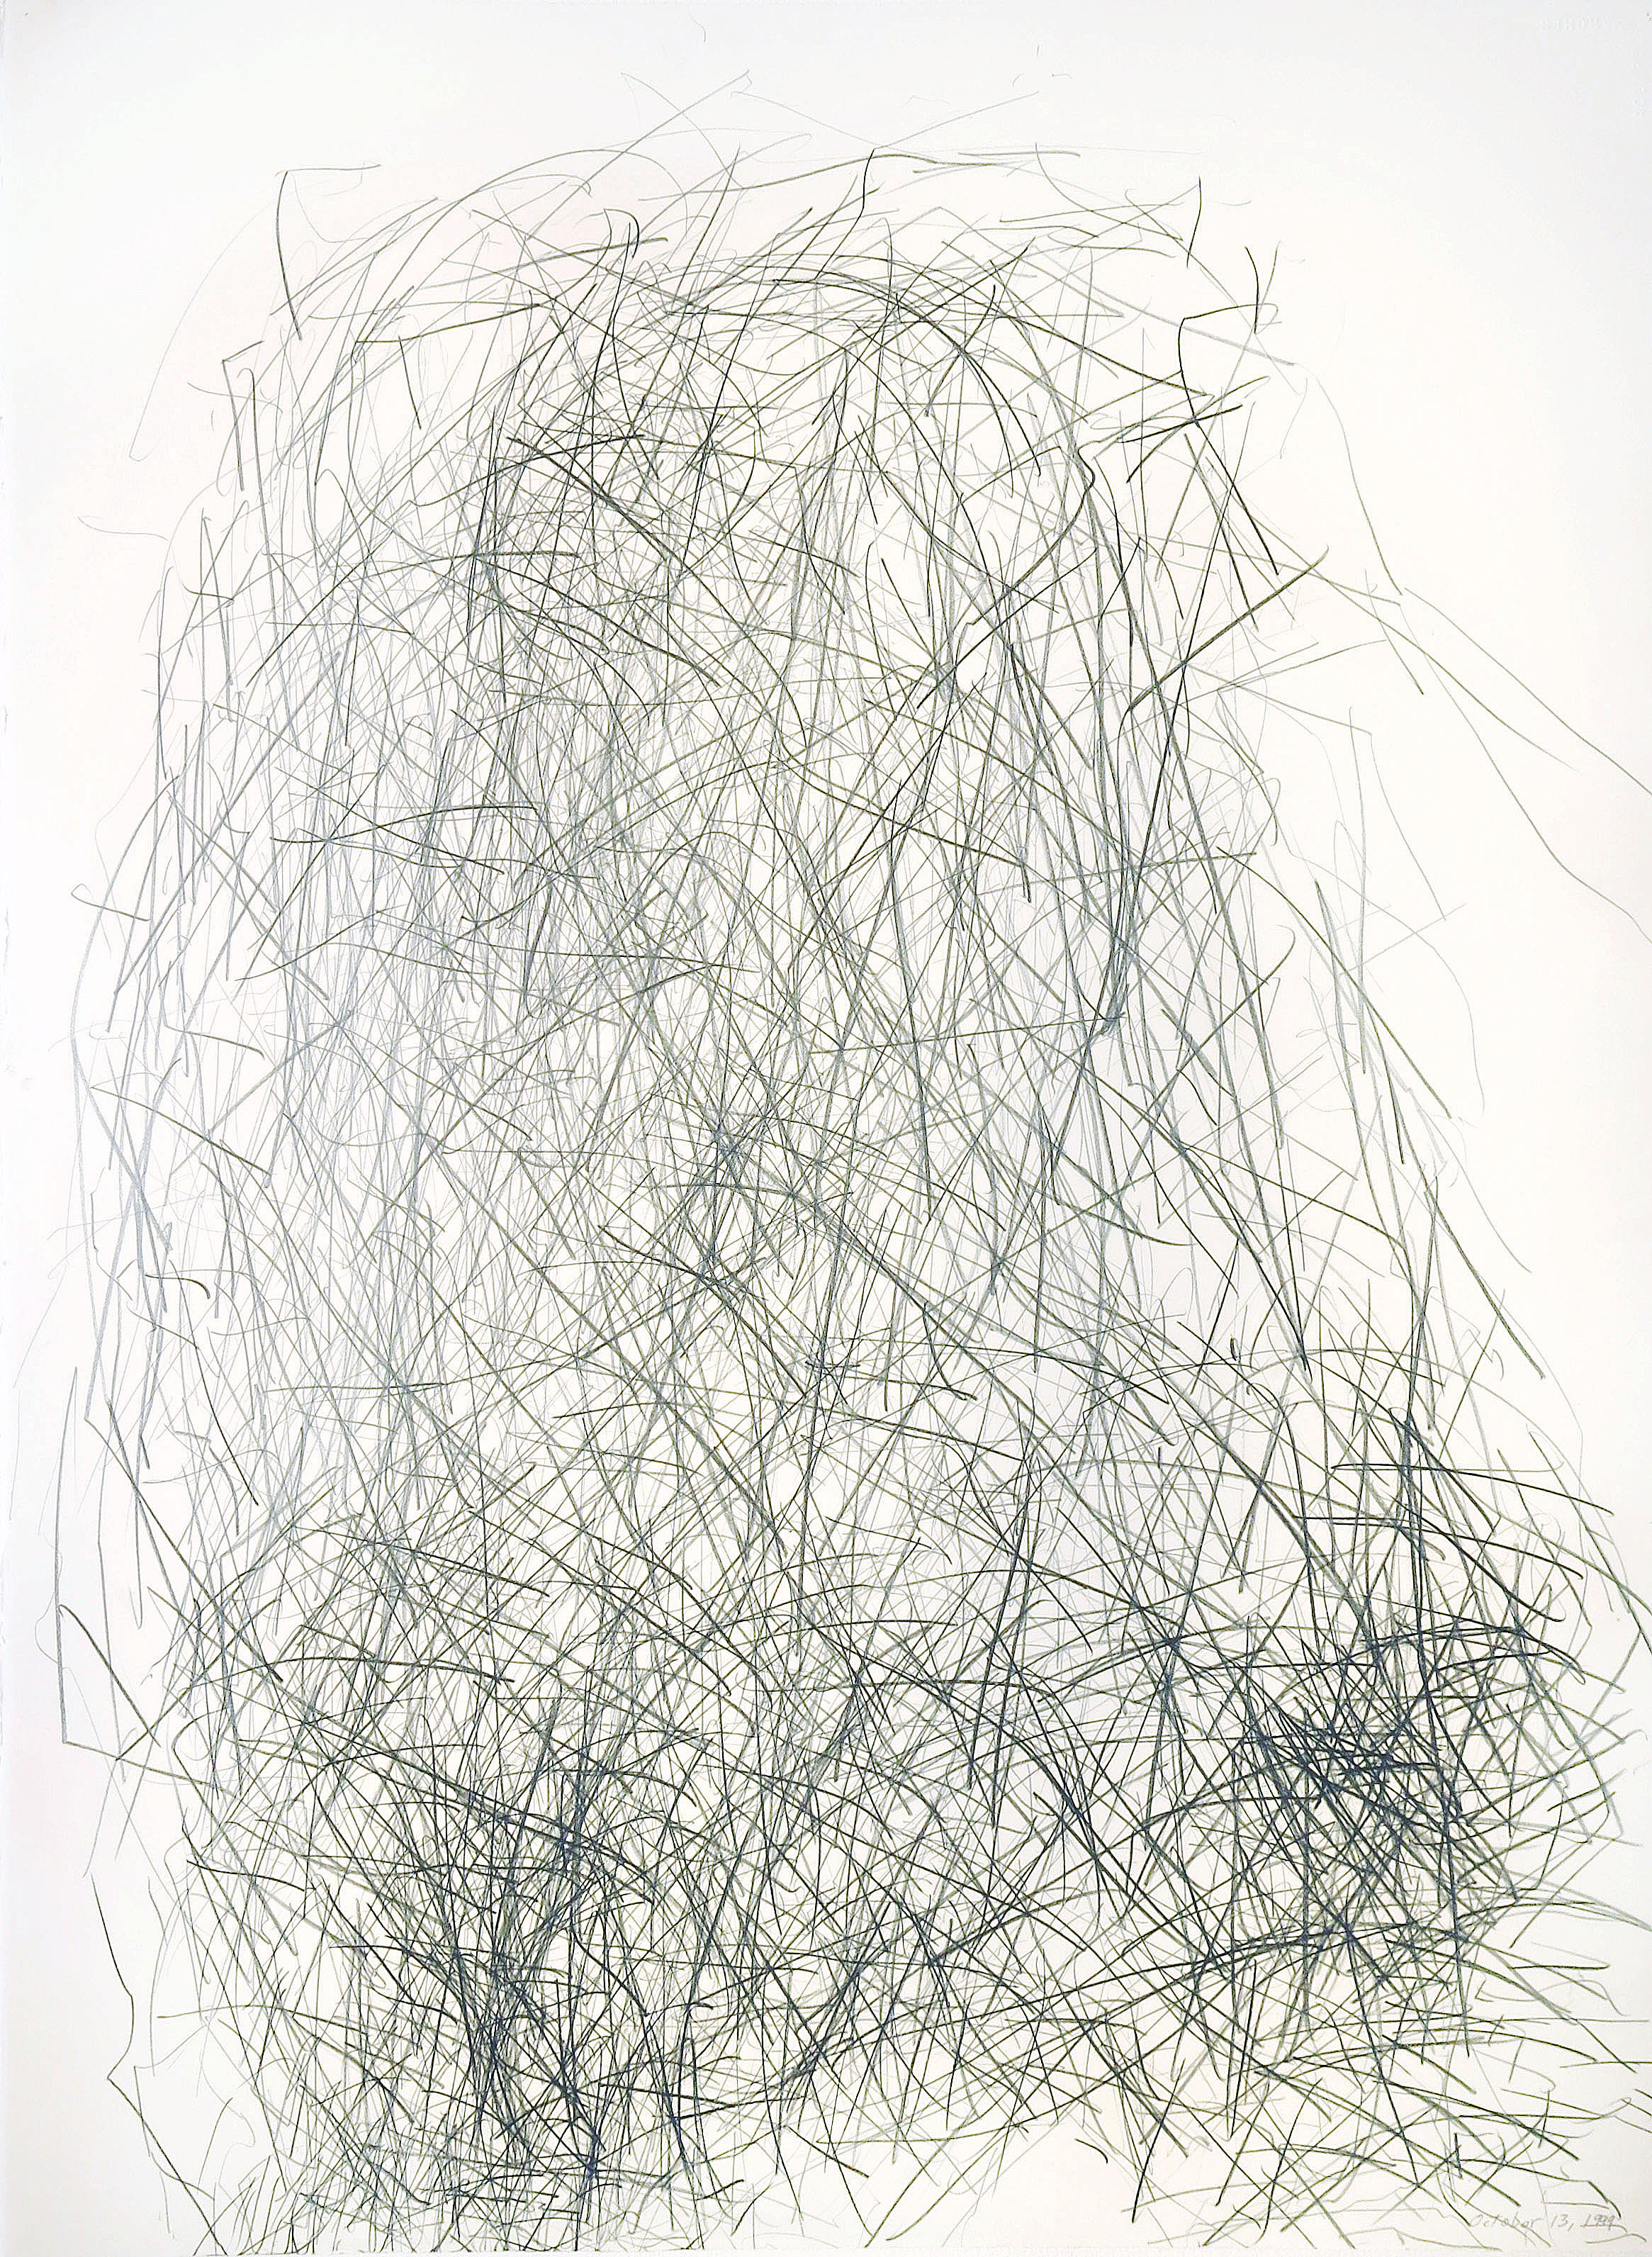 Edward Finnegan,  October 13, 1999 (Portraits series) , 1999, Graphite on paper, 30h x 22.5w in.